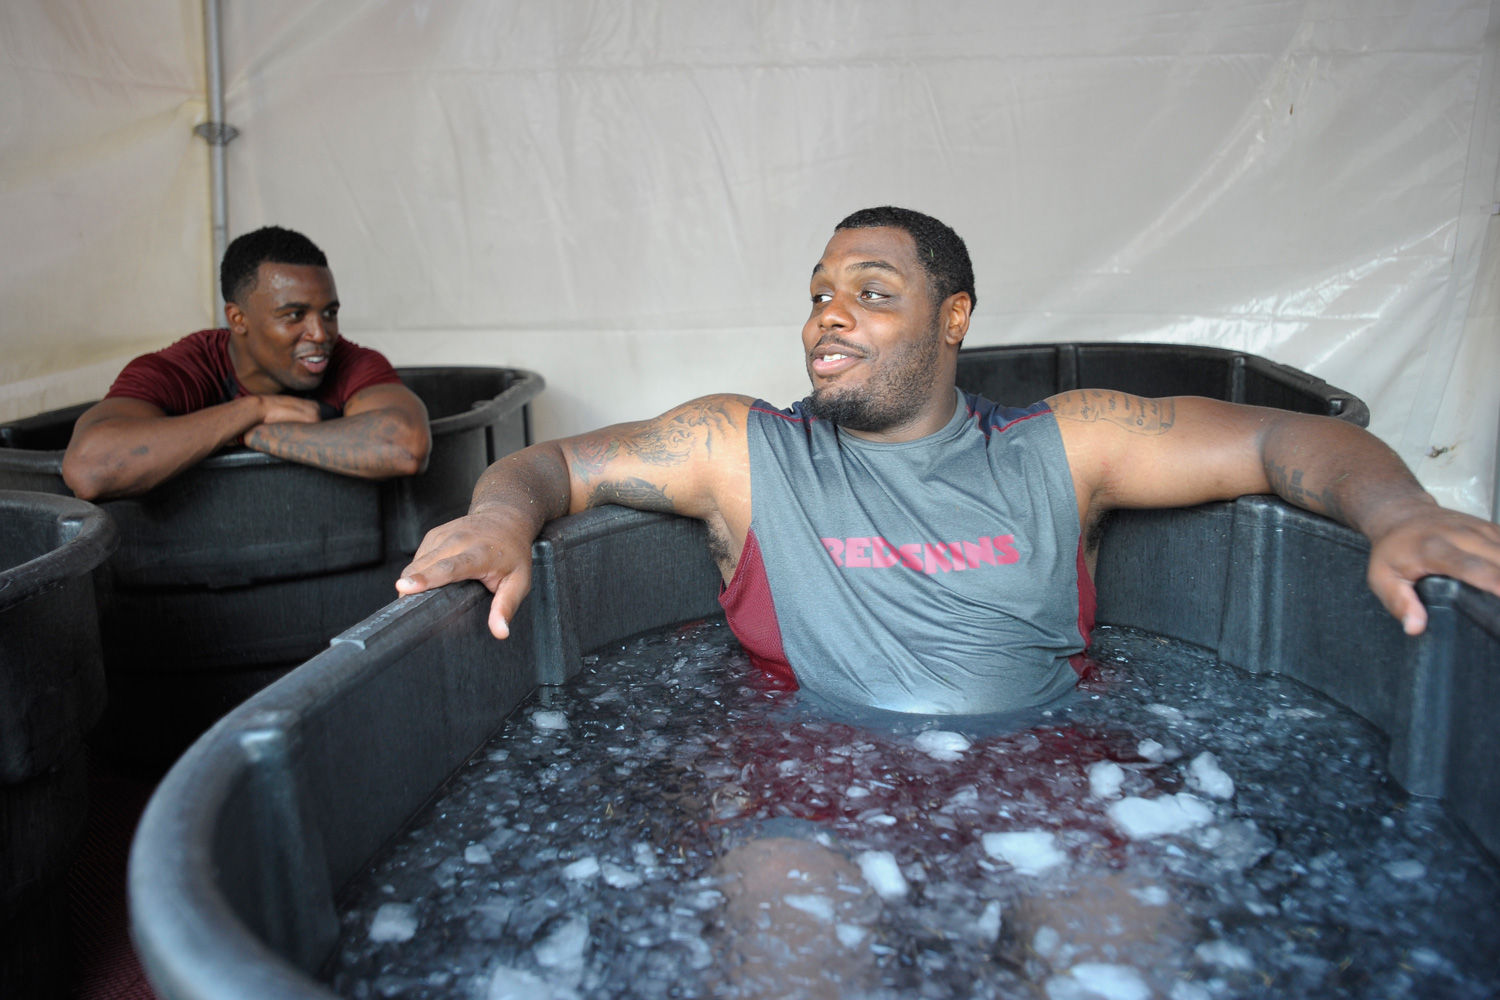 Former Washington Redskins wide receiver Darius Hanks (L) talks with former defensive lineman Chris Baker (R) as they cool off following the first day of training camp in July 2012.